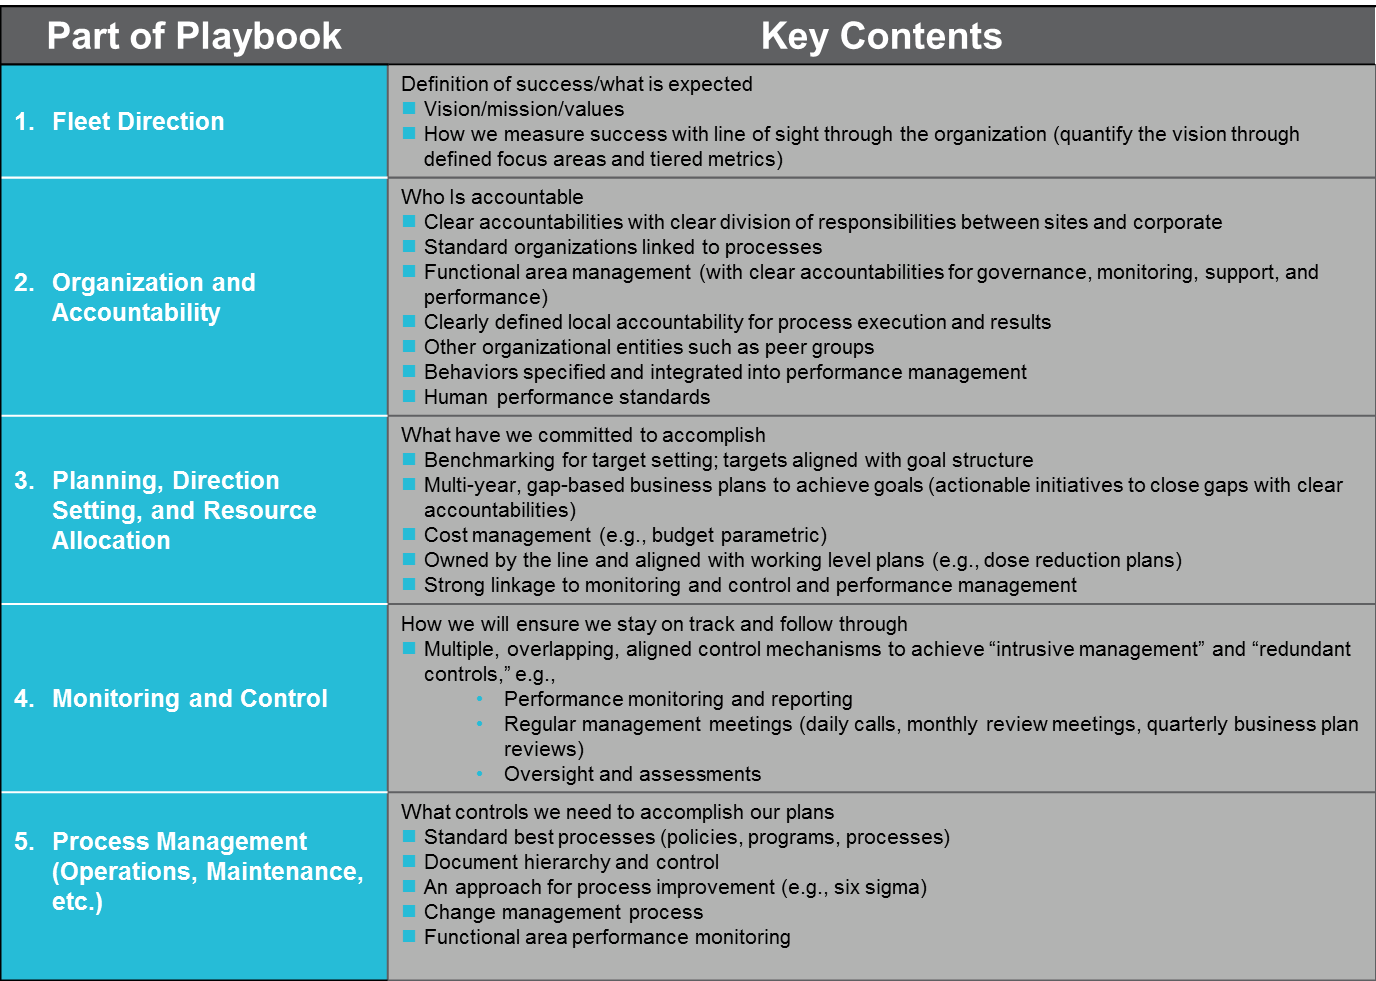 Management modelplaybook implementation and development scottmadden to do so senior leadership had to agree on organizations vision values and beliefs strategic focus areas and other key attributes pronofoot35fo Choice Image